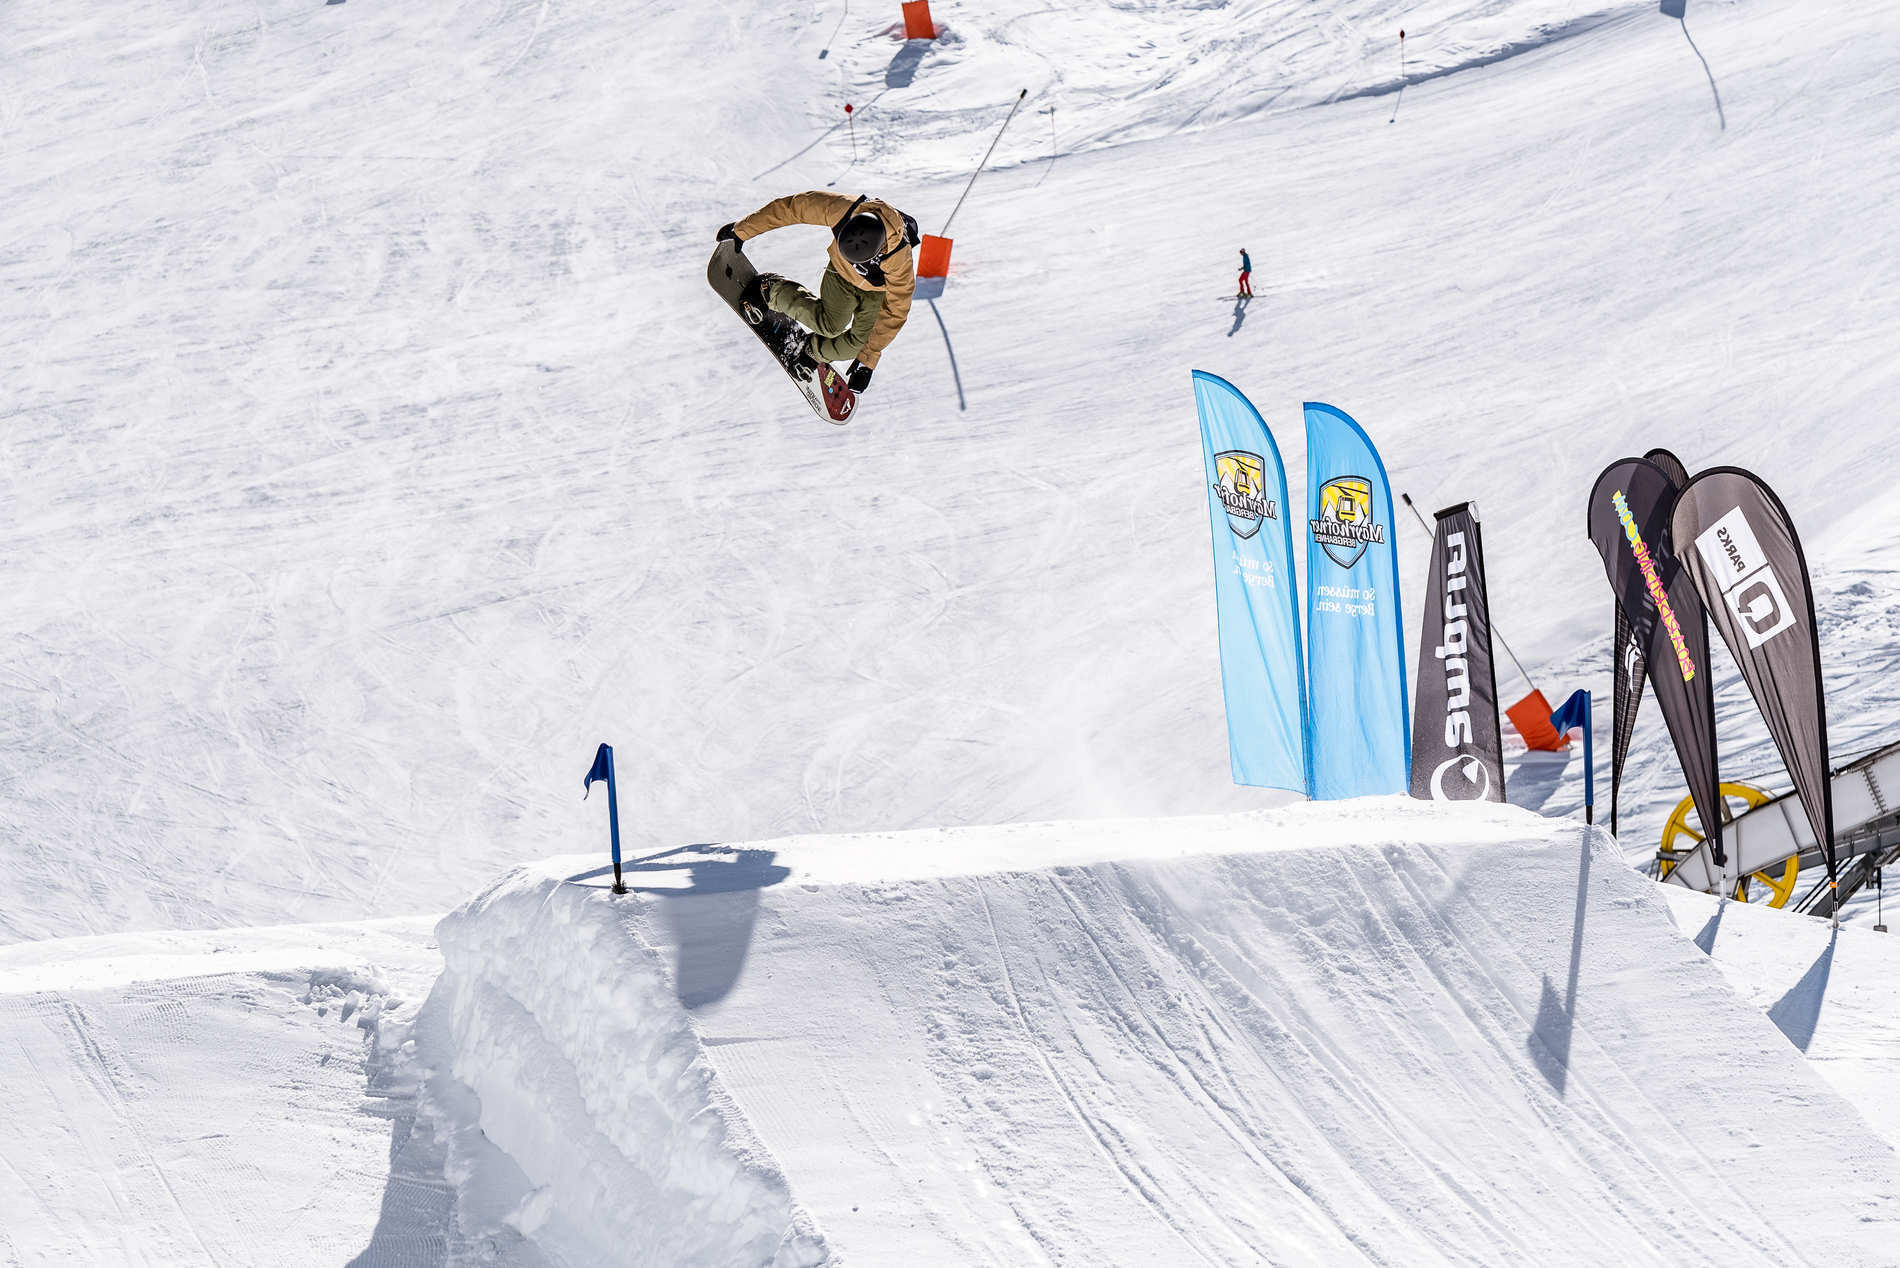 web mayrhofen 23 02 2019 action sb unknown rider christian riefenberg qparks 5